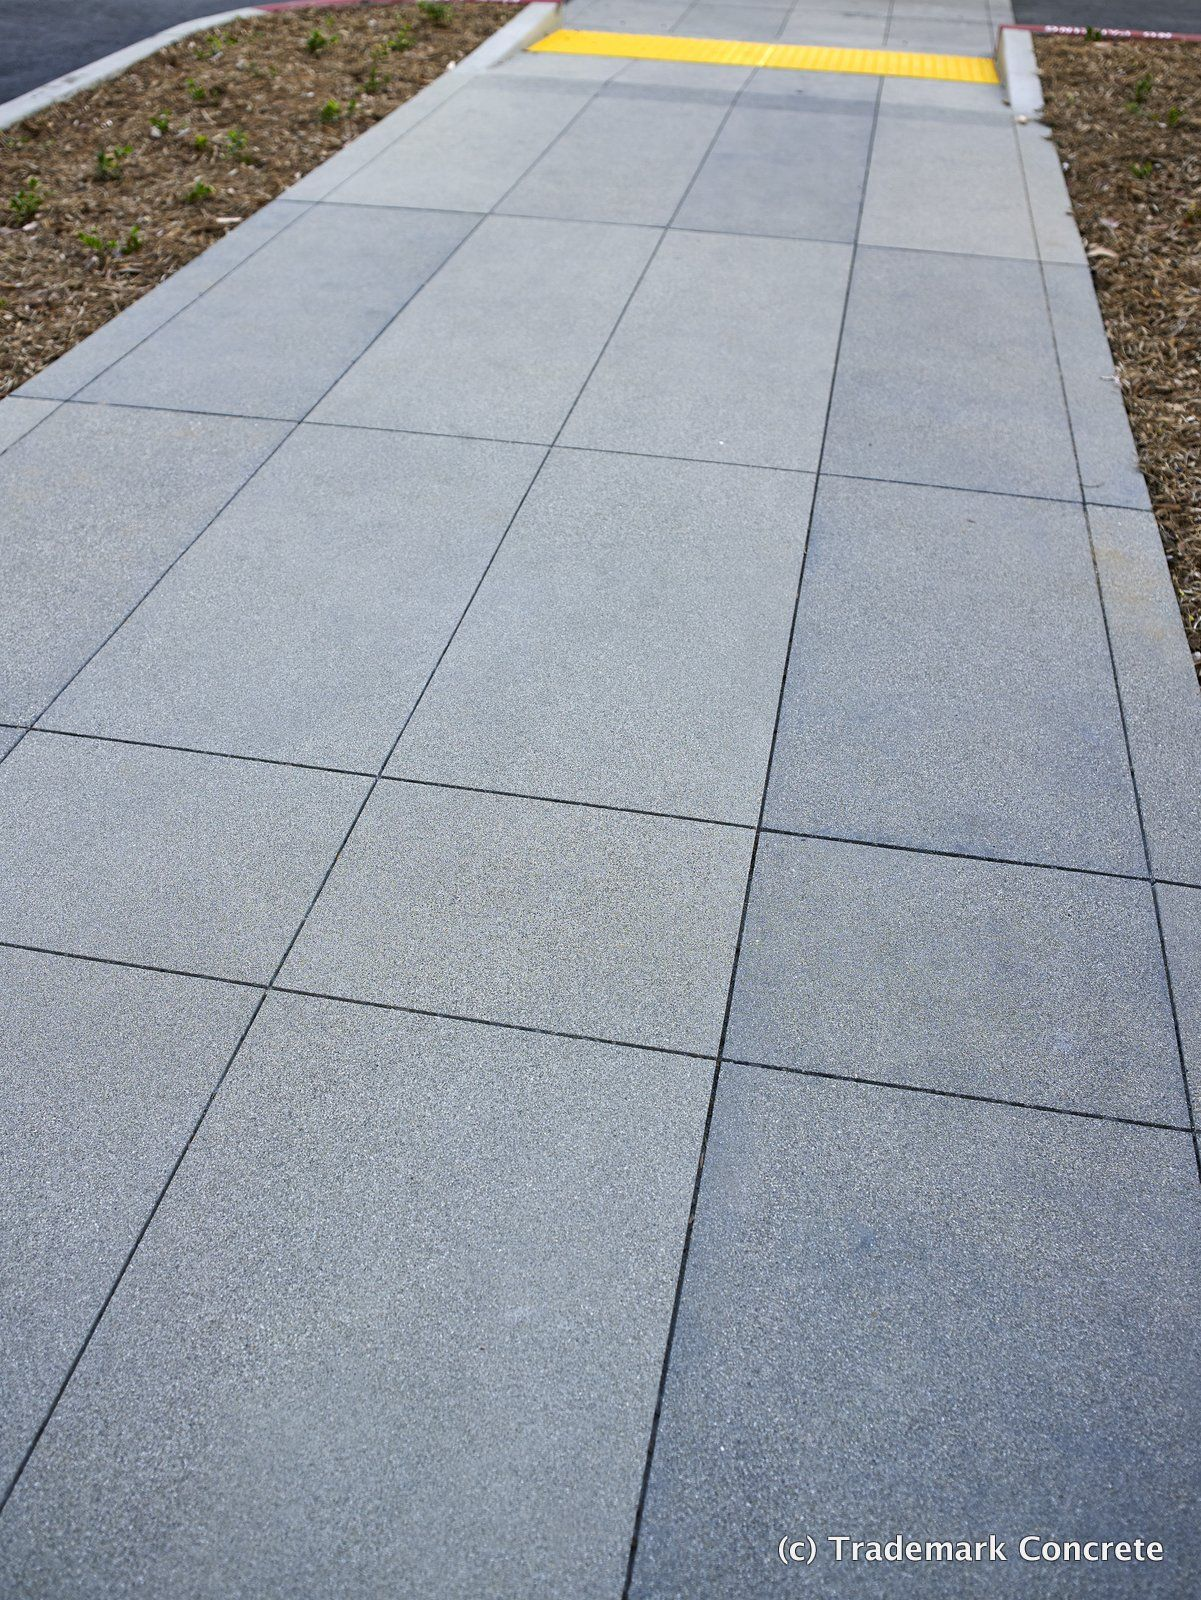 Decorative concrete installed by DCC member Trademark ...